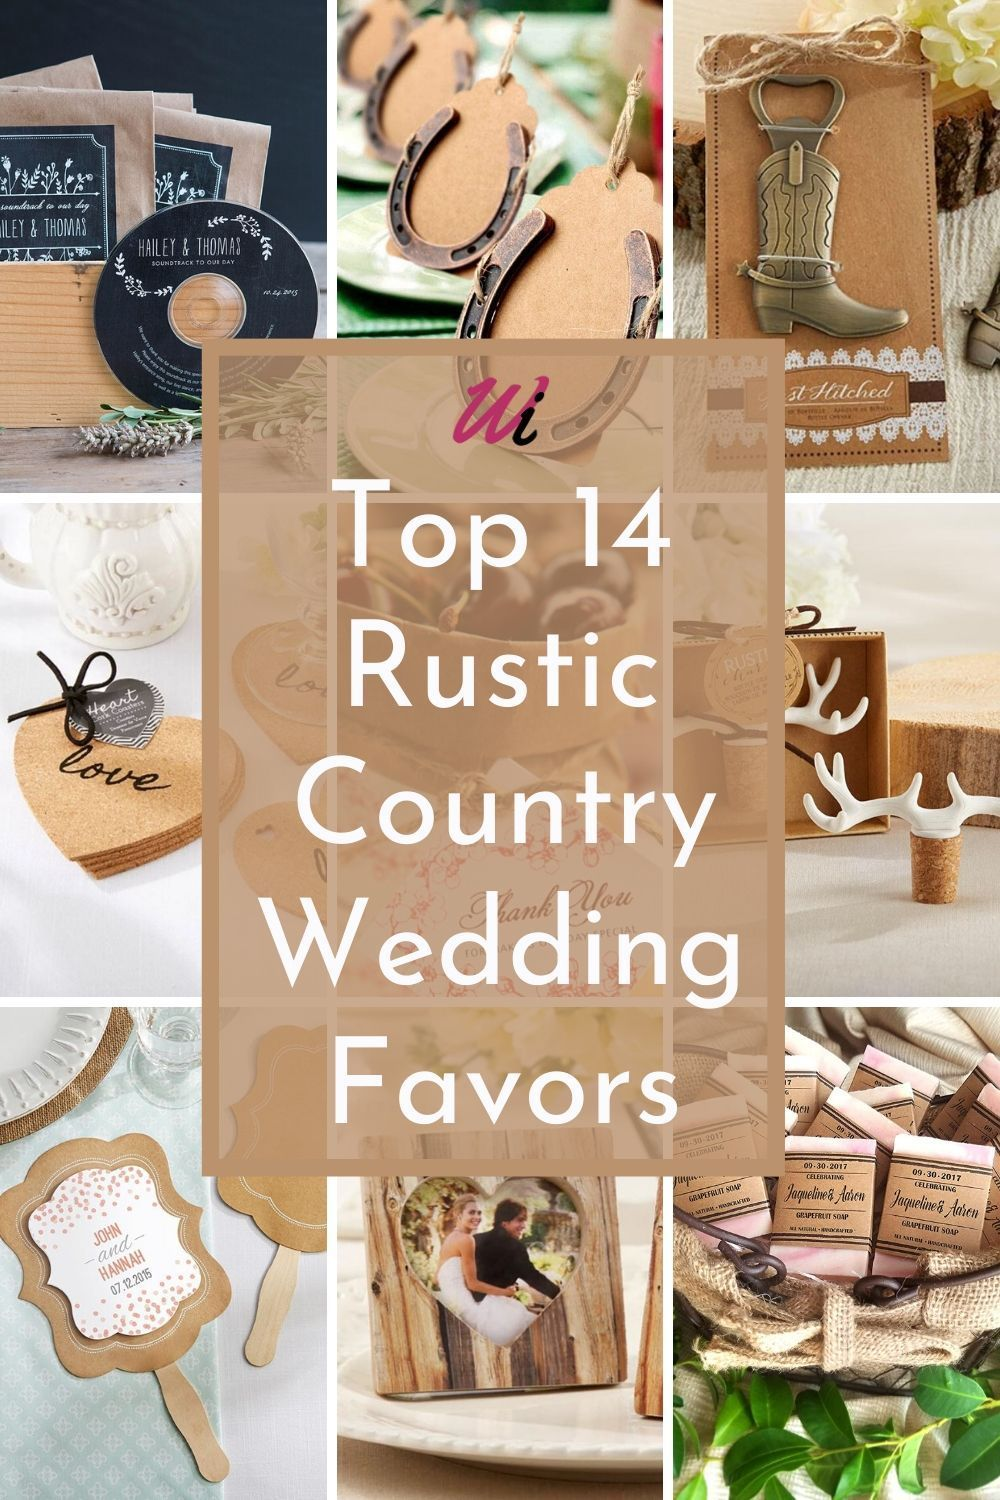 Creative And Unique Rustic Country Wedding Unique Favors Ideas Your Guests Will Love In 2020 Themed Wedding Favors Country Wedding Favors Wedding Favors